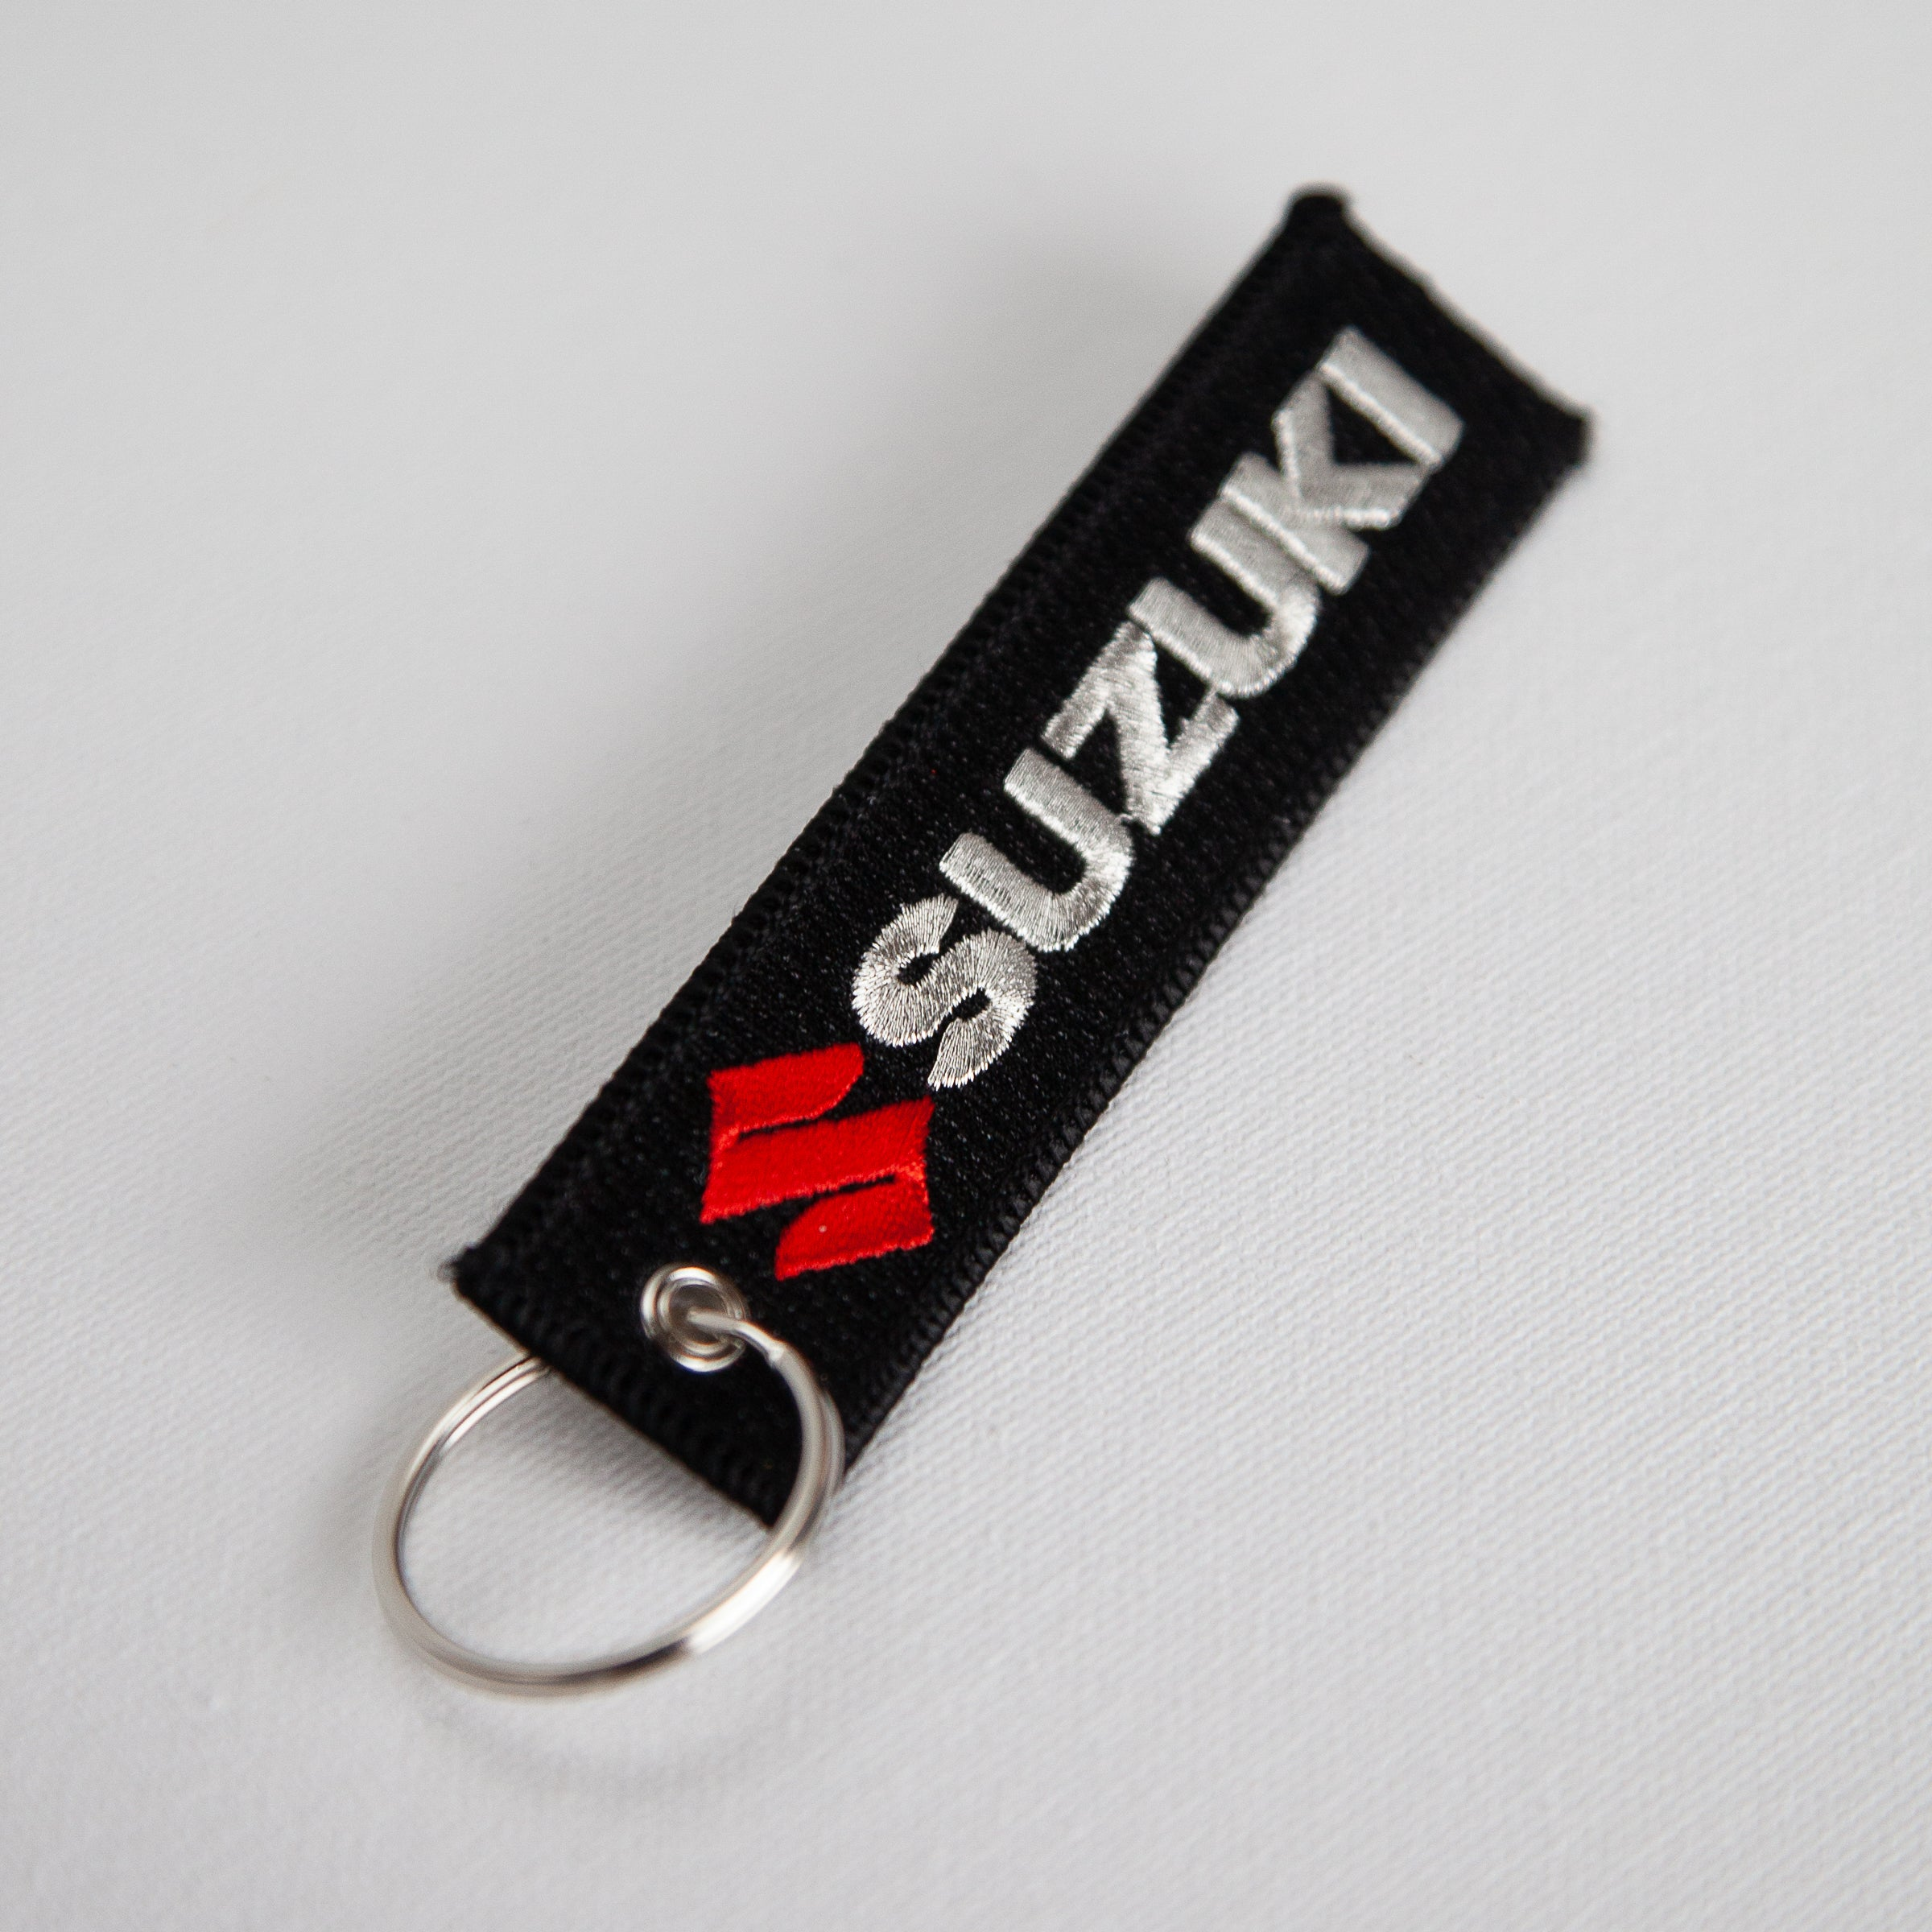 Dreamcycle Motorcycle Museum |  Black Suzuki keychain on white background.